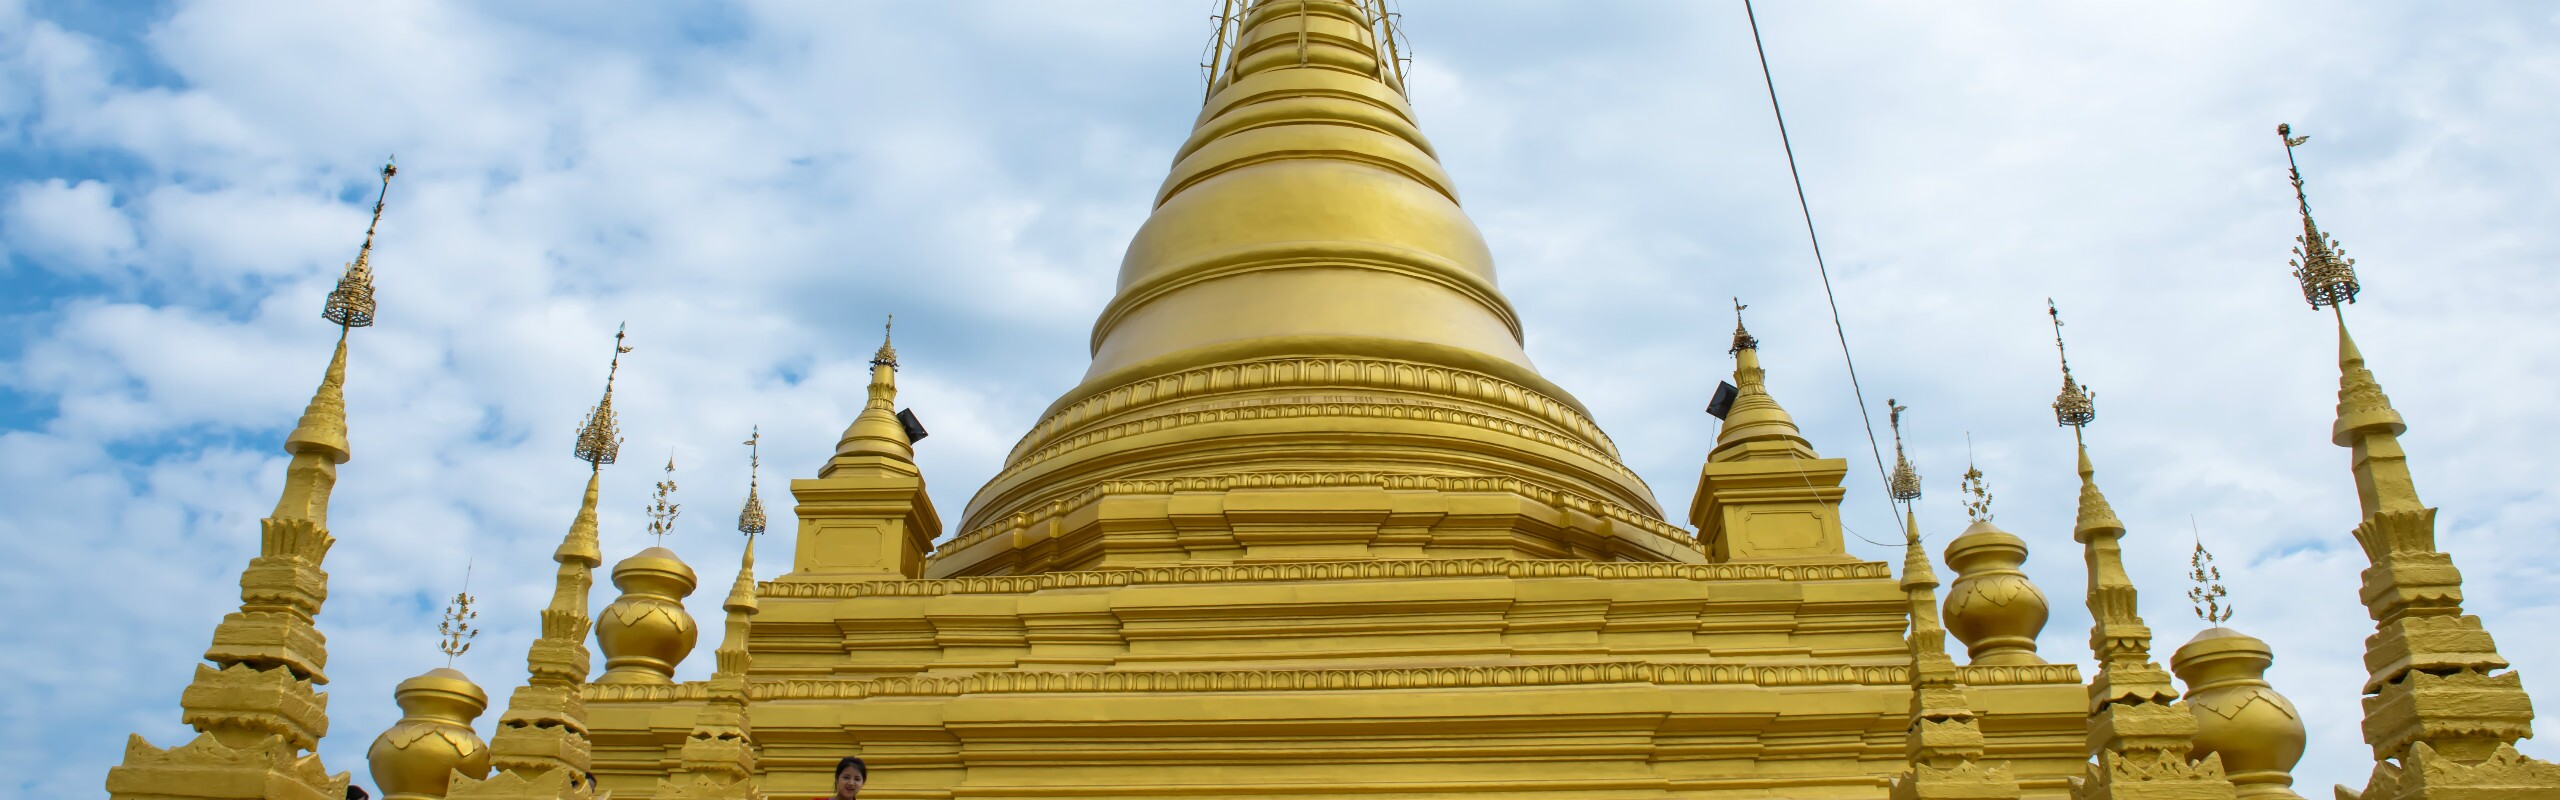 July Weather in Mandalay - Hot and Humid